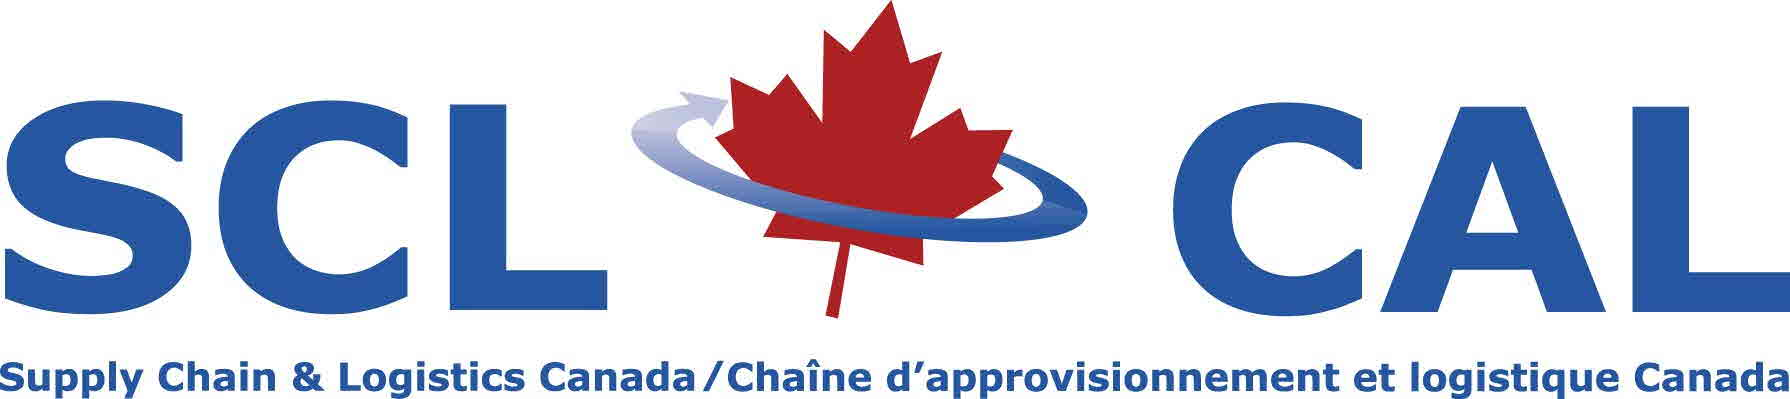 Supply Chain & Logistics Canada / CAL